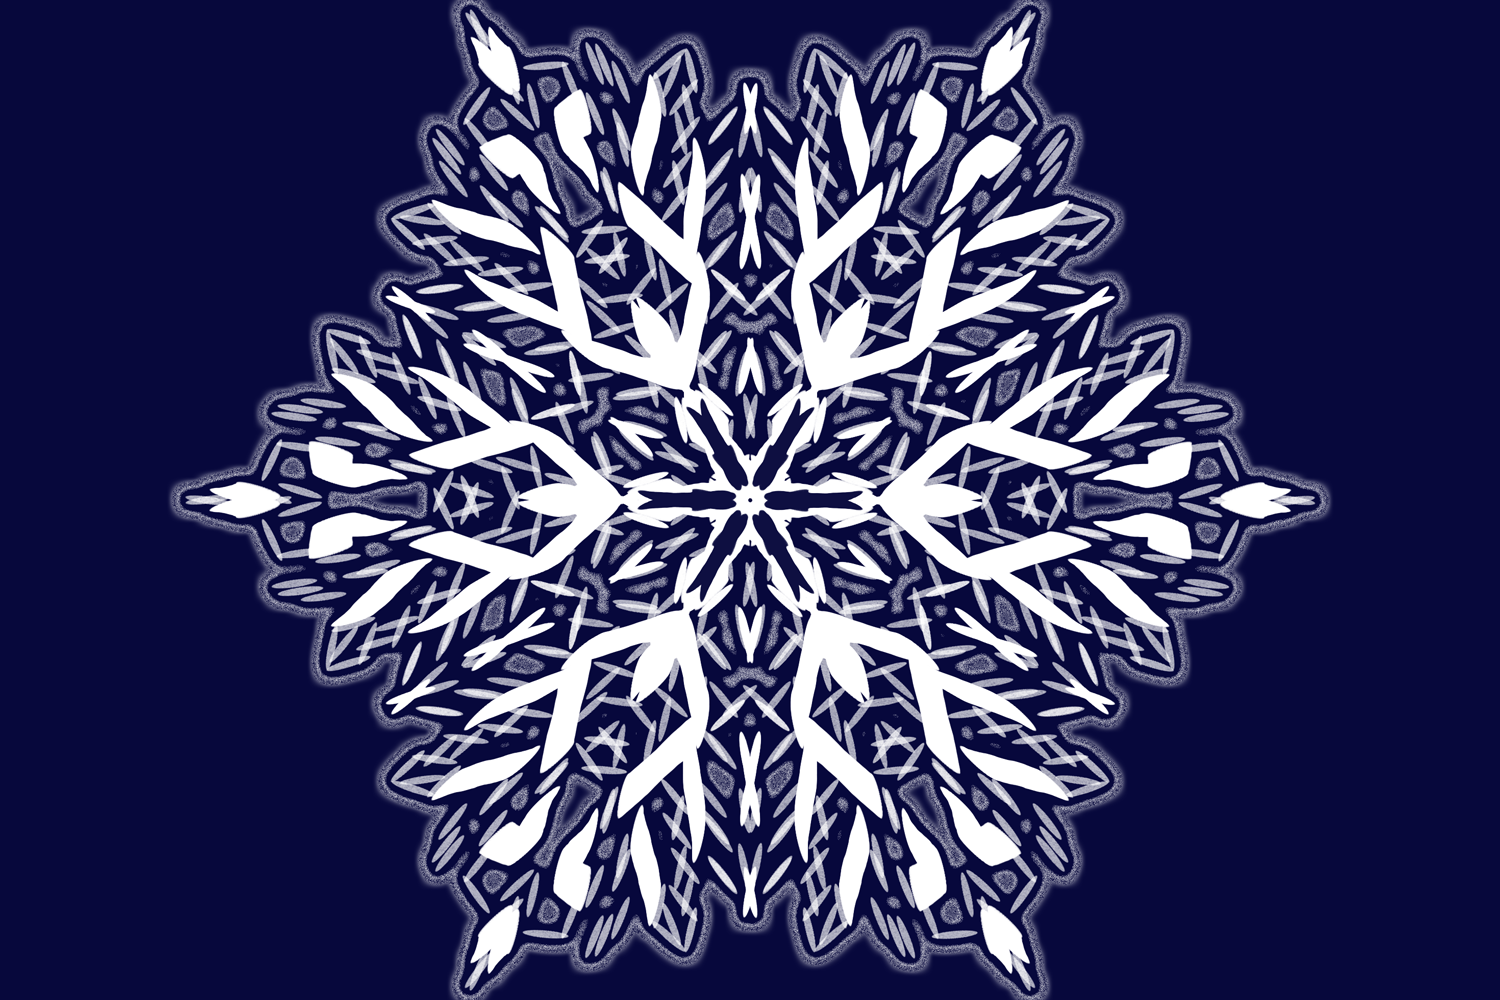 A snowflake mandala with an icy outer glow effect applied